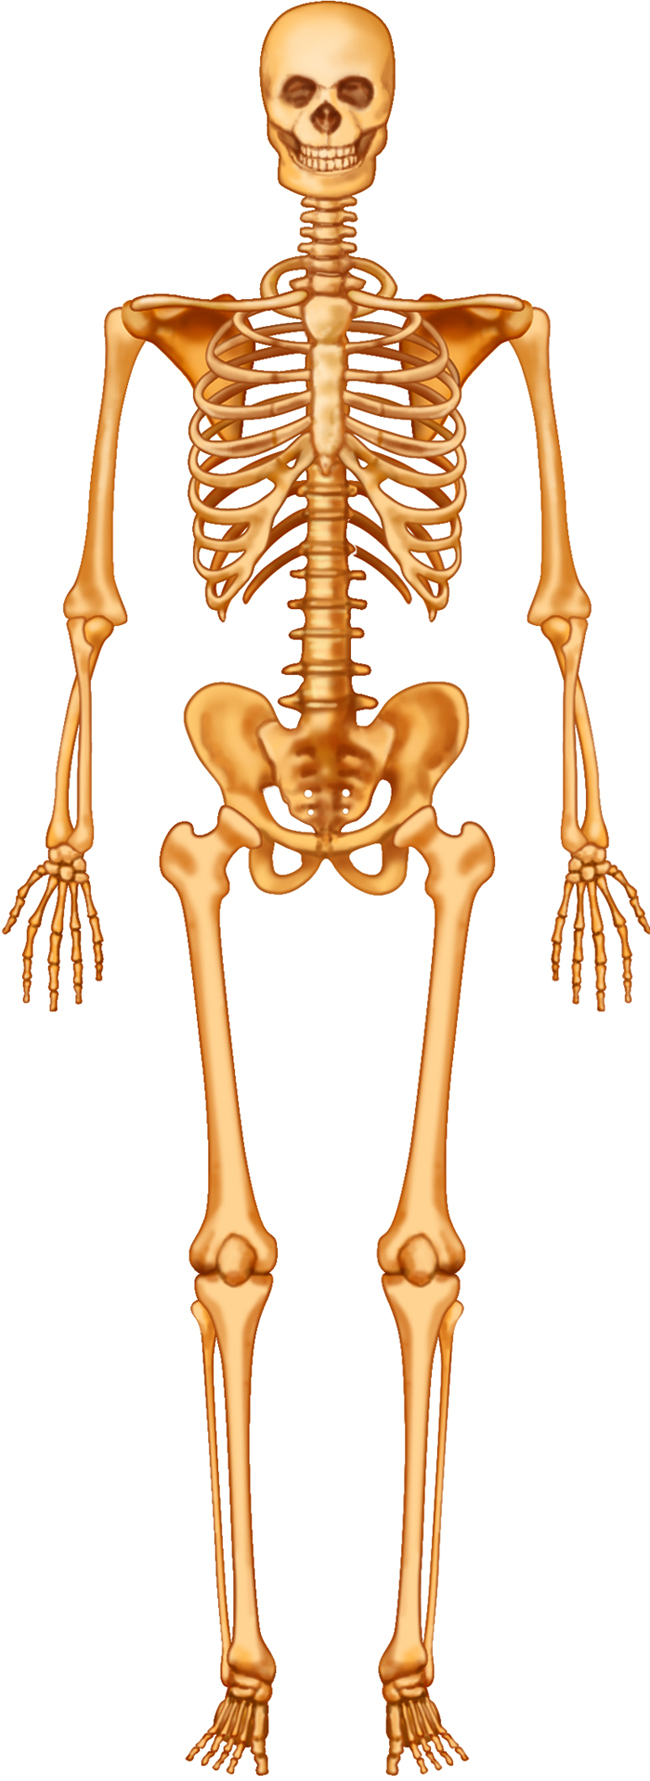 Outstanding Labeling Human Skeleton Gallery - Human Anatomy Images ...